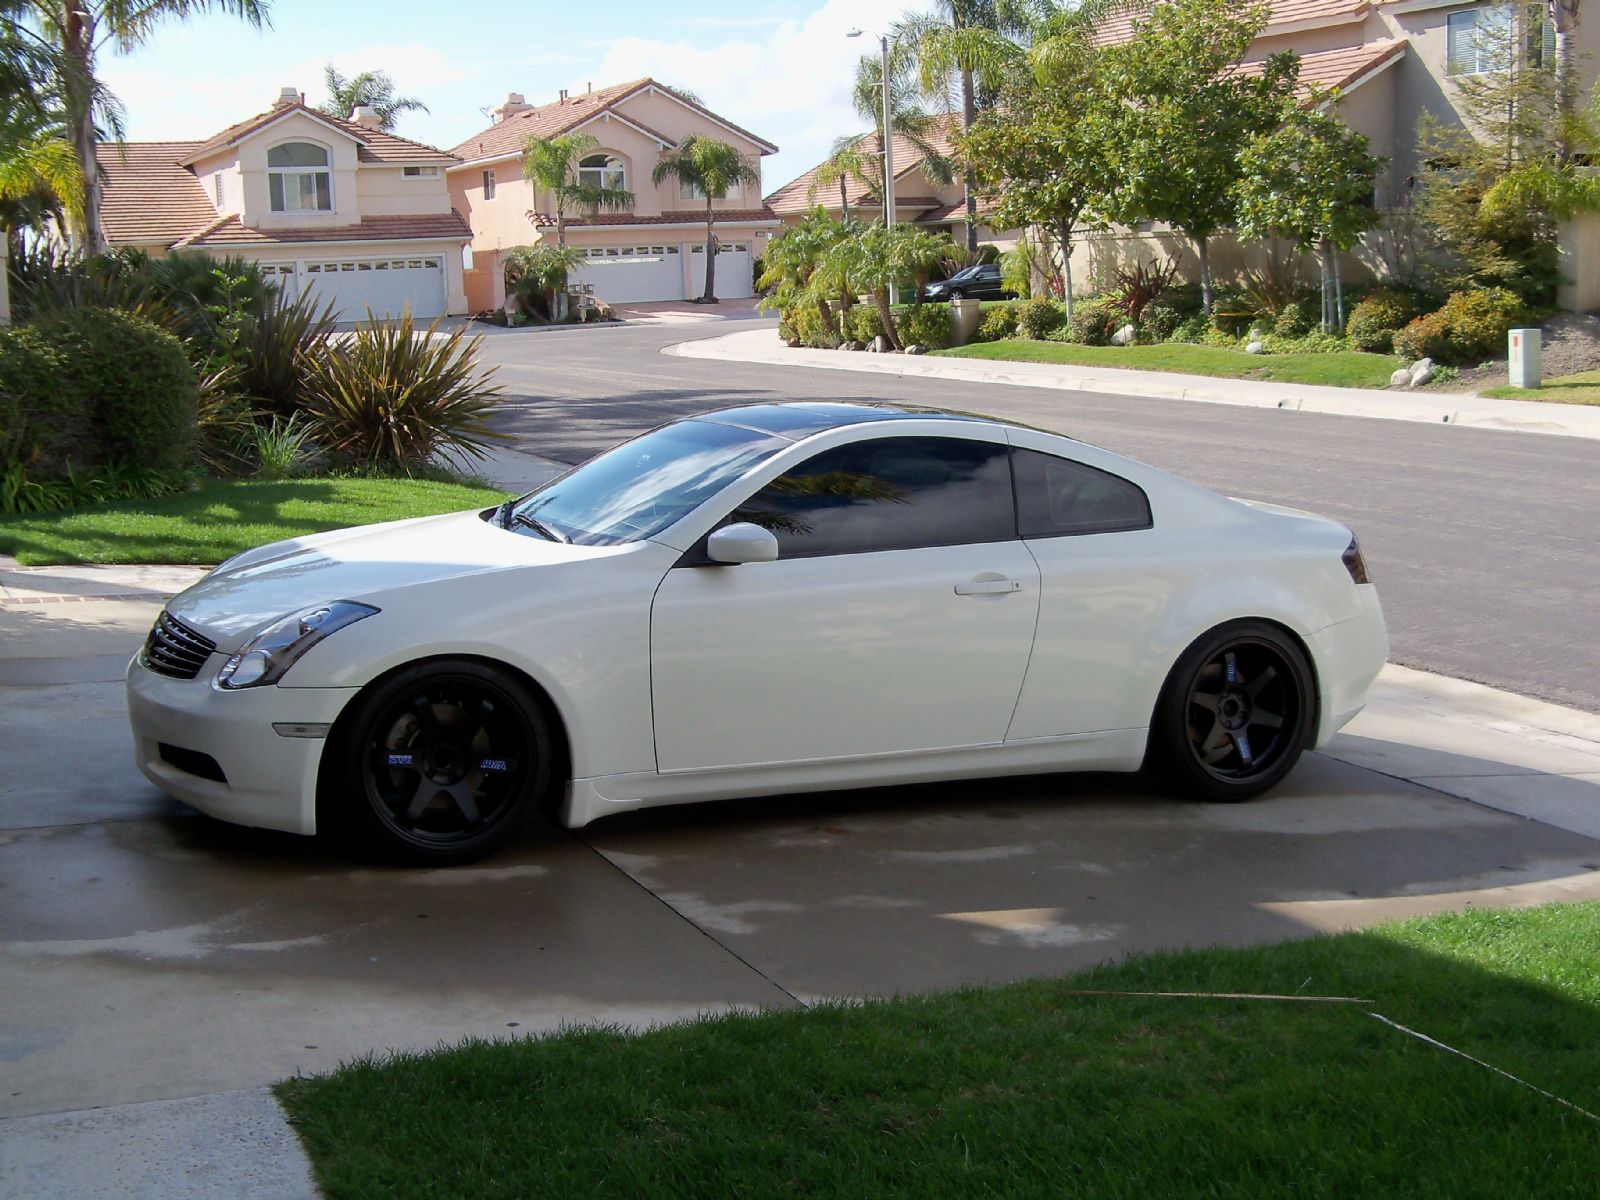 medium resolution of infinity g35 image custome 2005 infiniti g35 for sale lake forest california